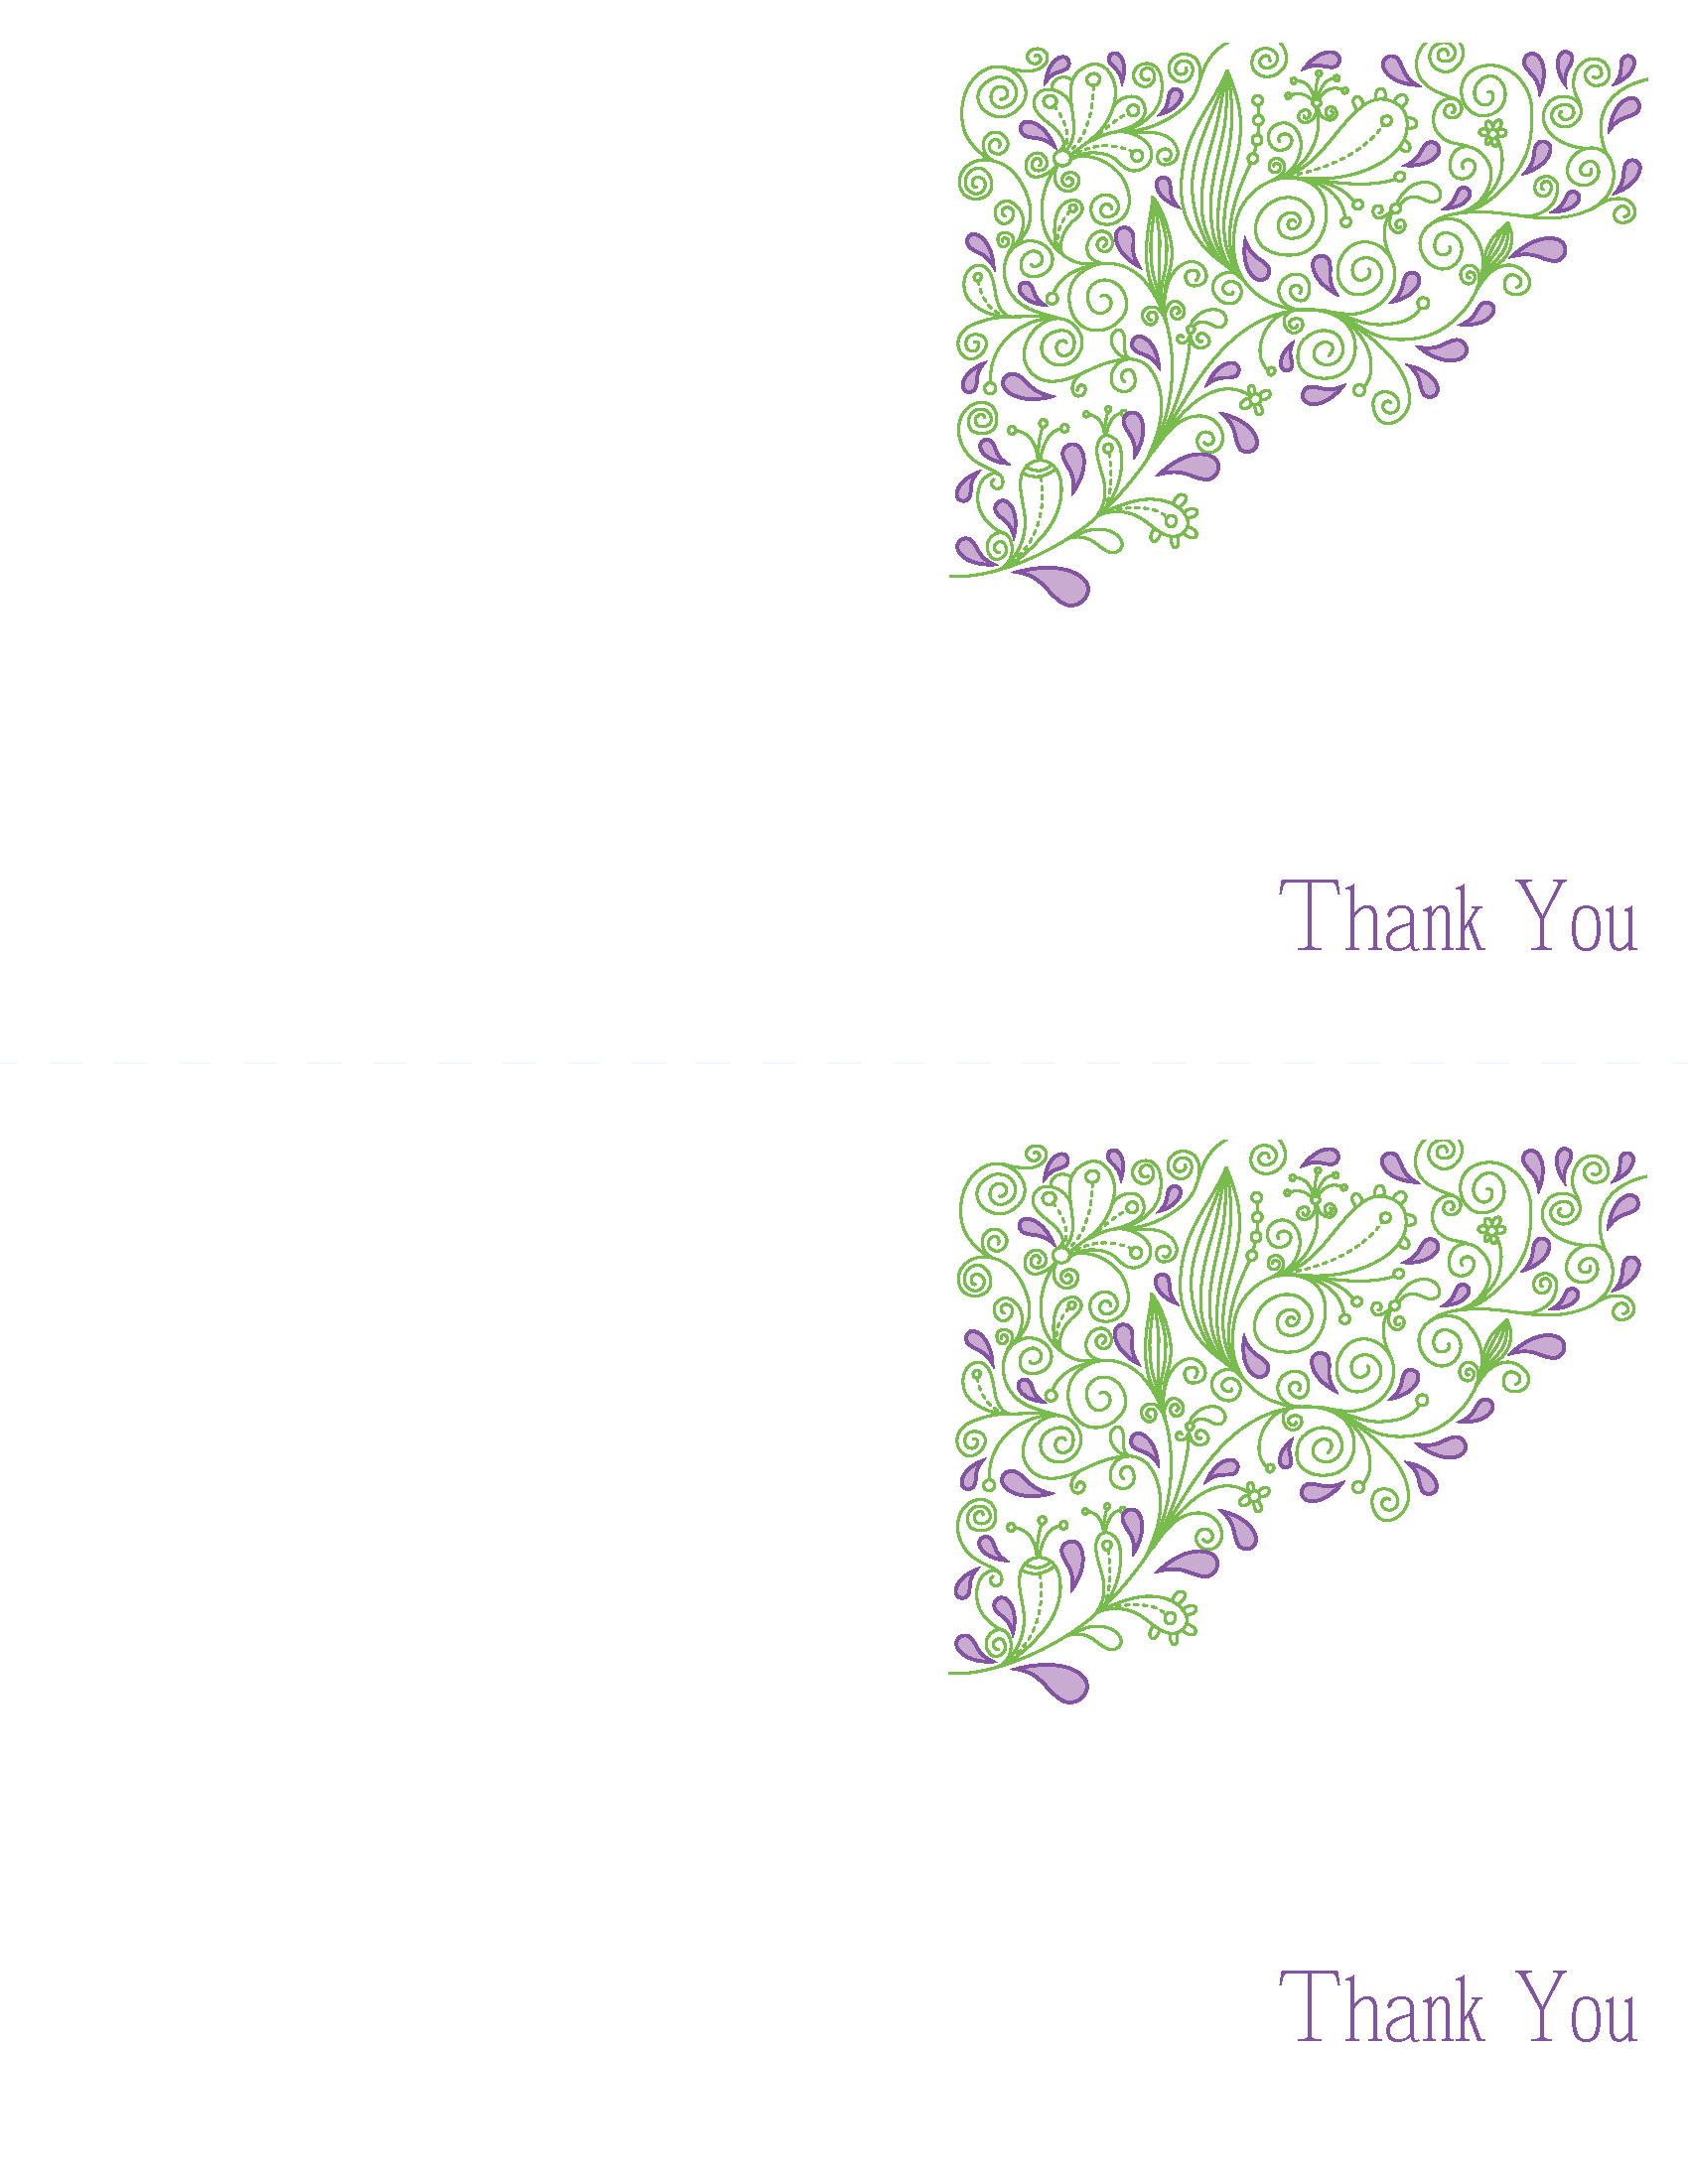 Thank You Cards. Printable Wedding Invitations Paisley Elise Suite ...